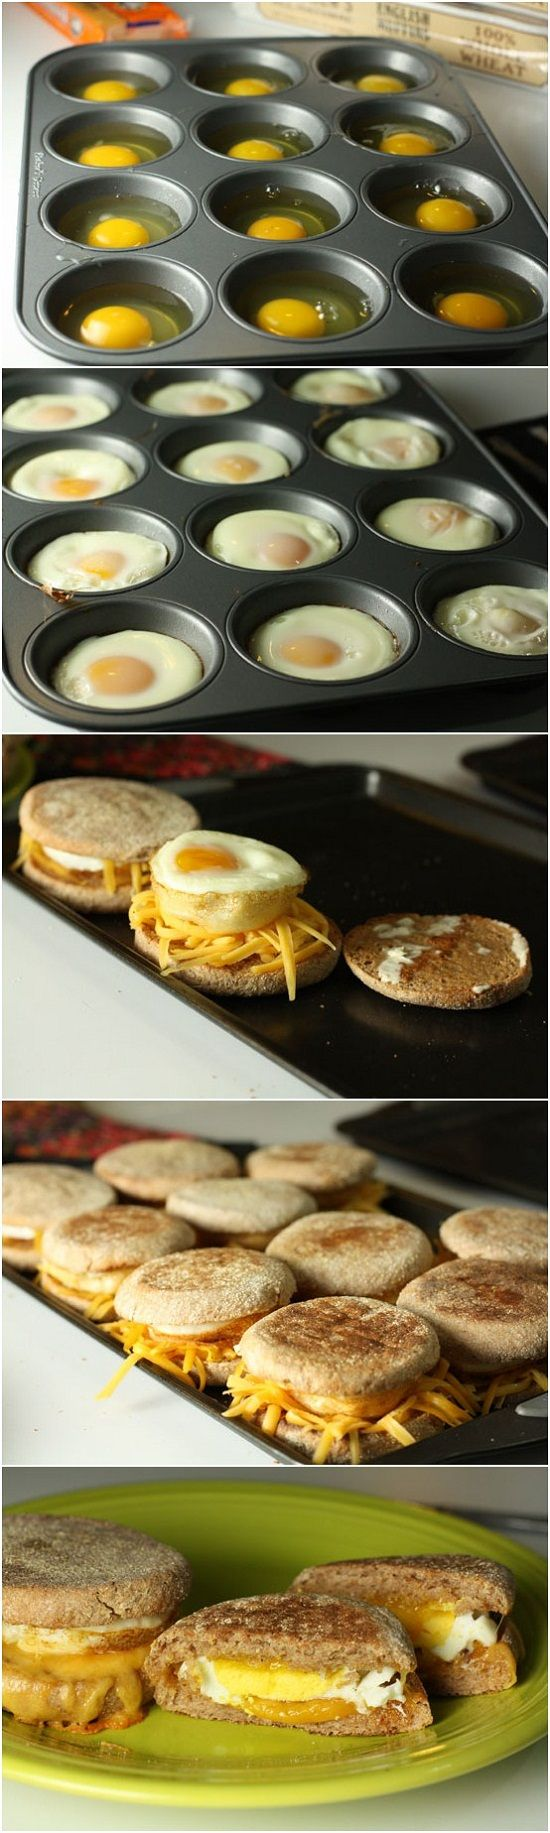 Breakfast Sandwiches Recipe